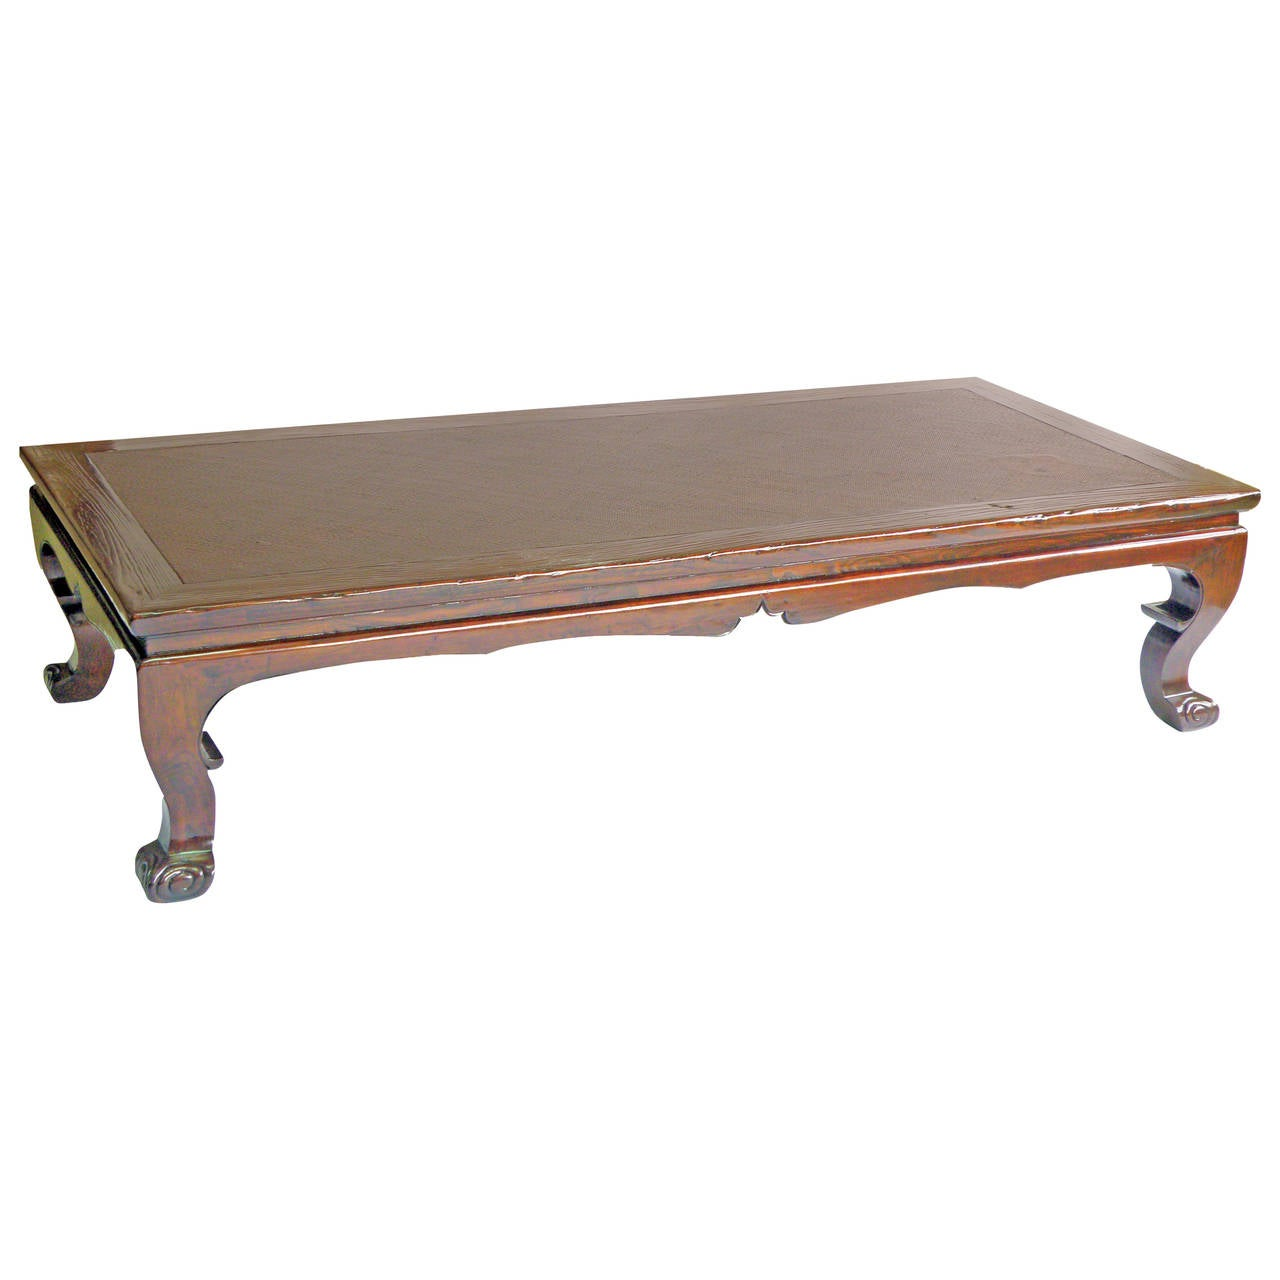 Large antique day bed low table or coffee table with cabriole legs chinoiserie for sale at 1stdibs One of a kind coffee tables